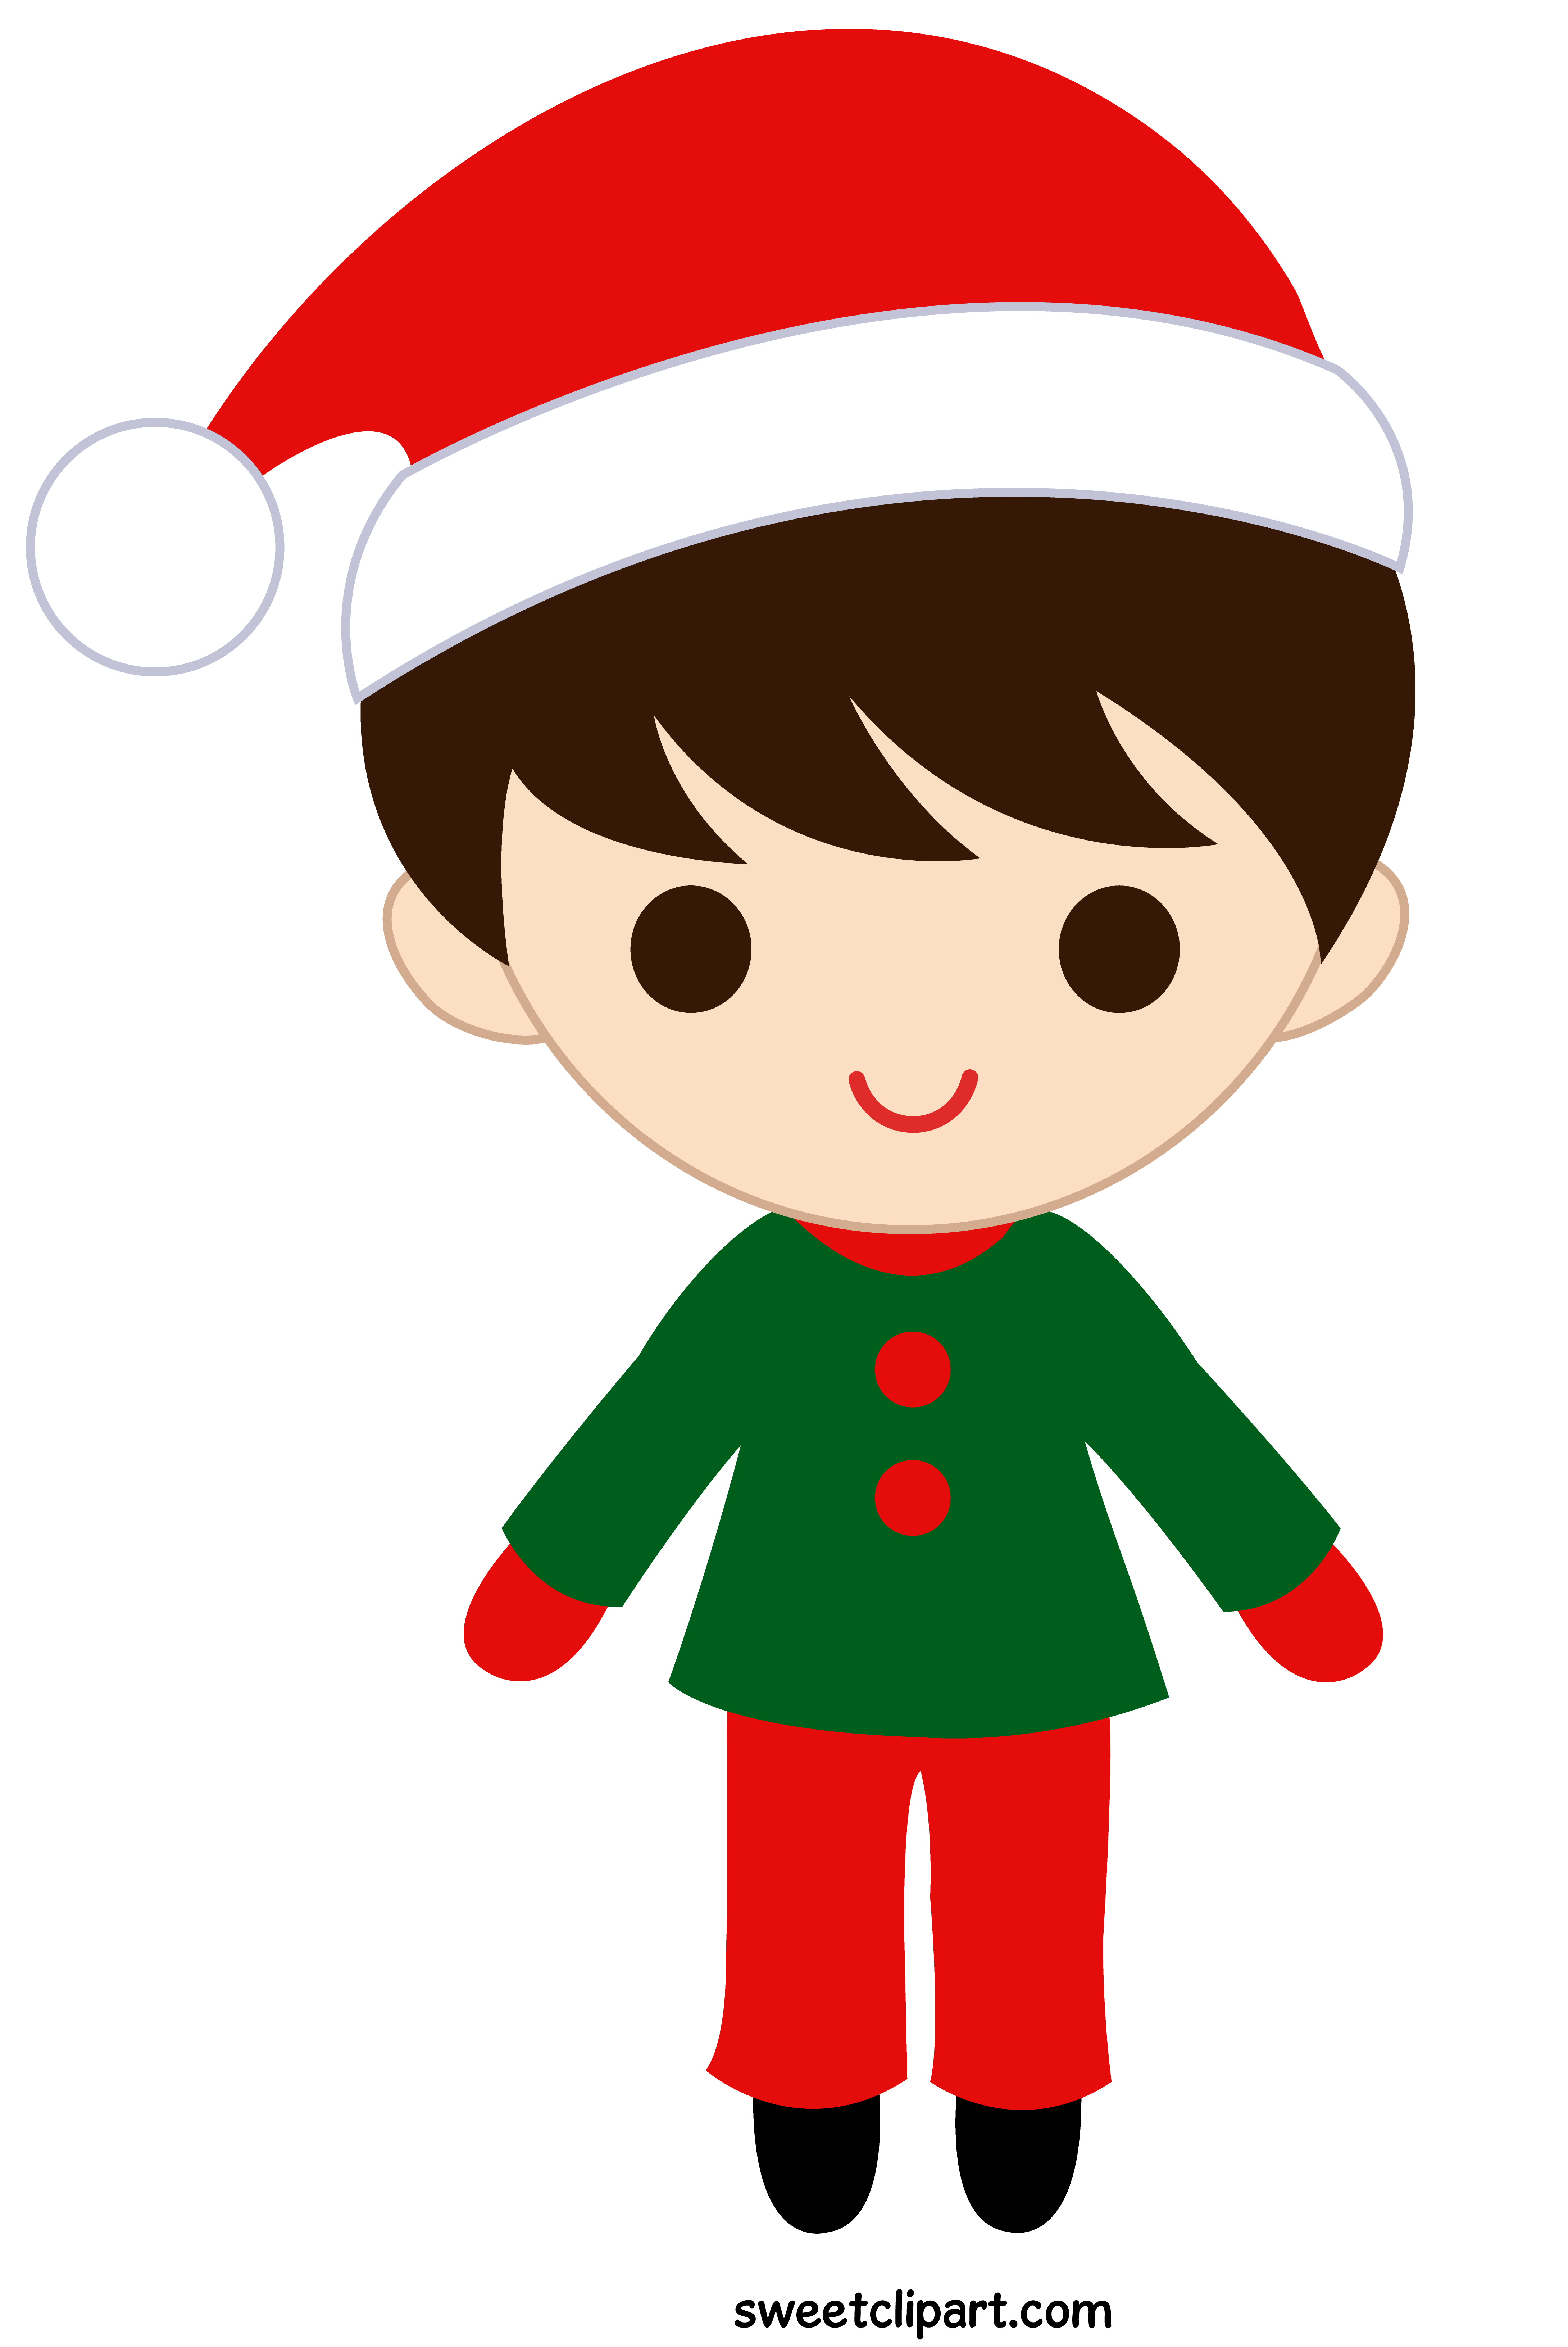 Christmas drink clipart image freeuse library Christmas Boy Clipart - Sweet Clip Art image freeuse library